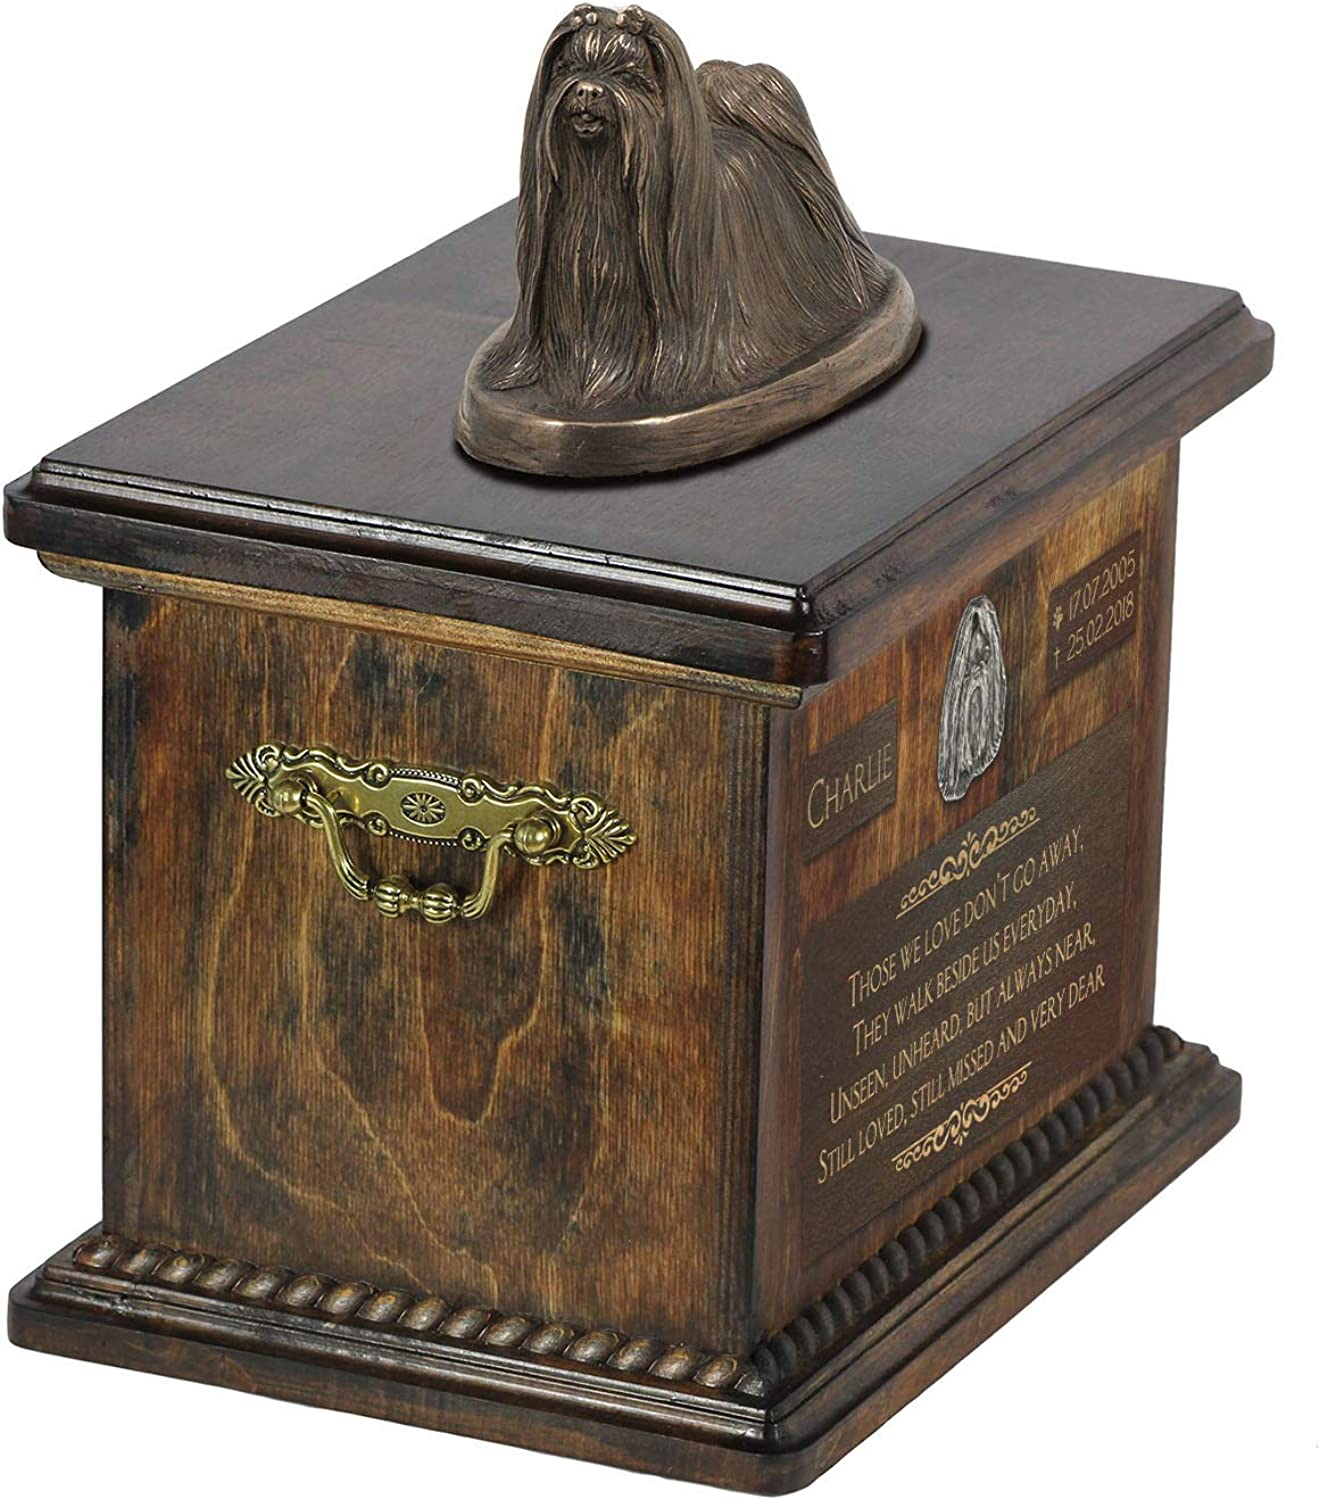 Shih Tzu, Urn for Dog Ashes Memorial with Statue, Pet's Name and Quote  ArtDog Personalized